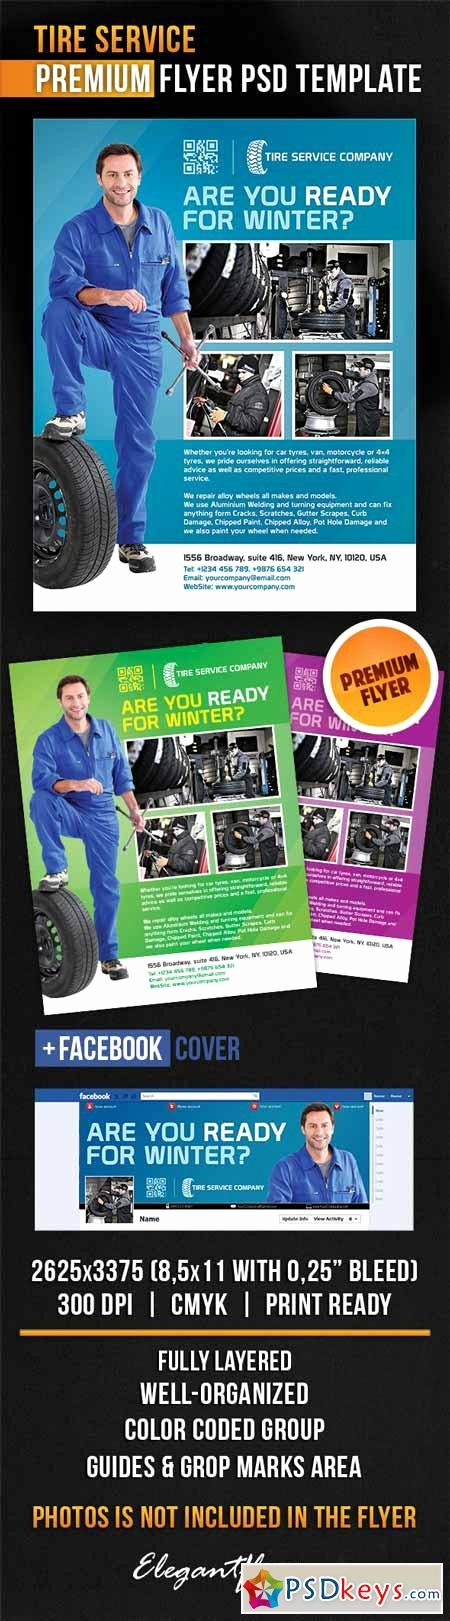 Facebook Cover Template Psd Best Of Tire Service – Flyer Psd Template Cover Free